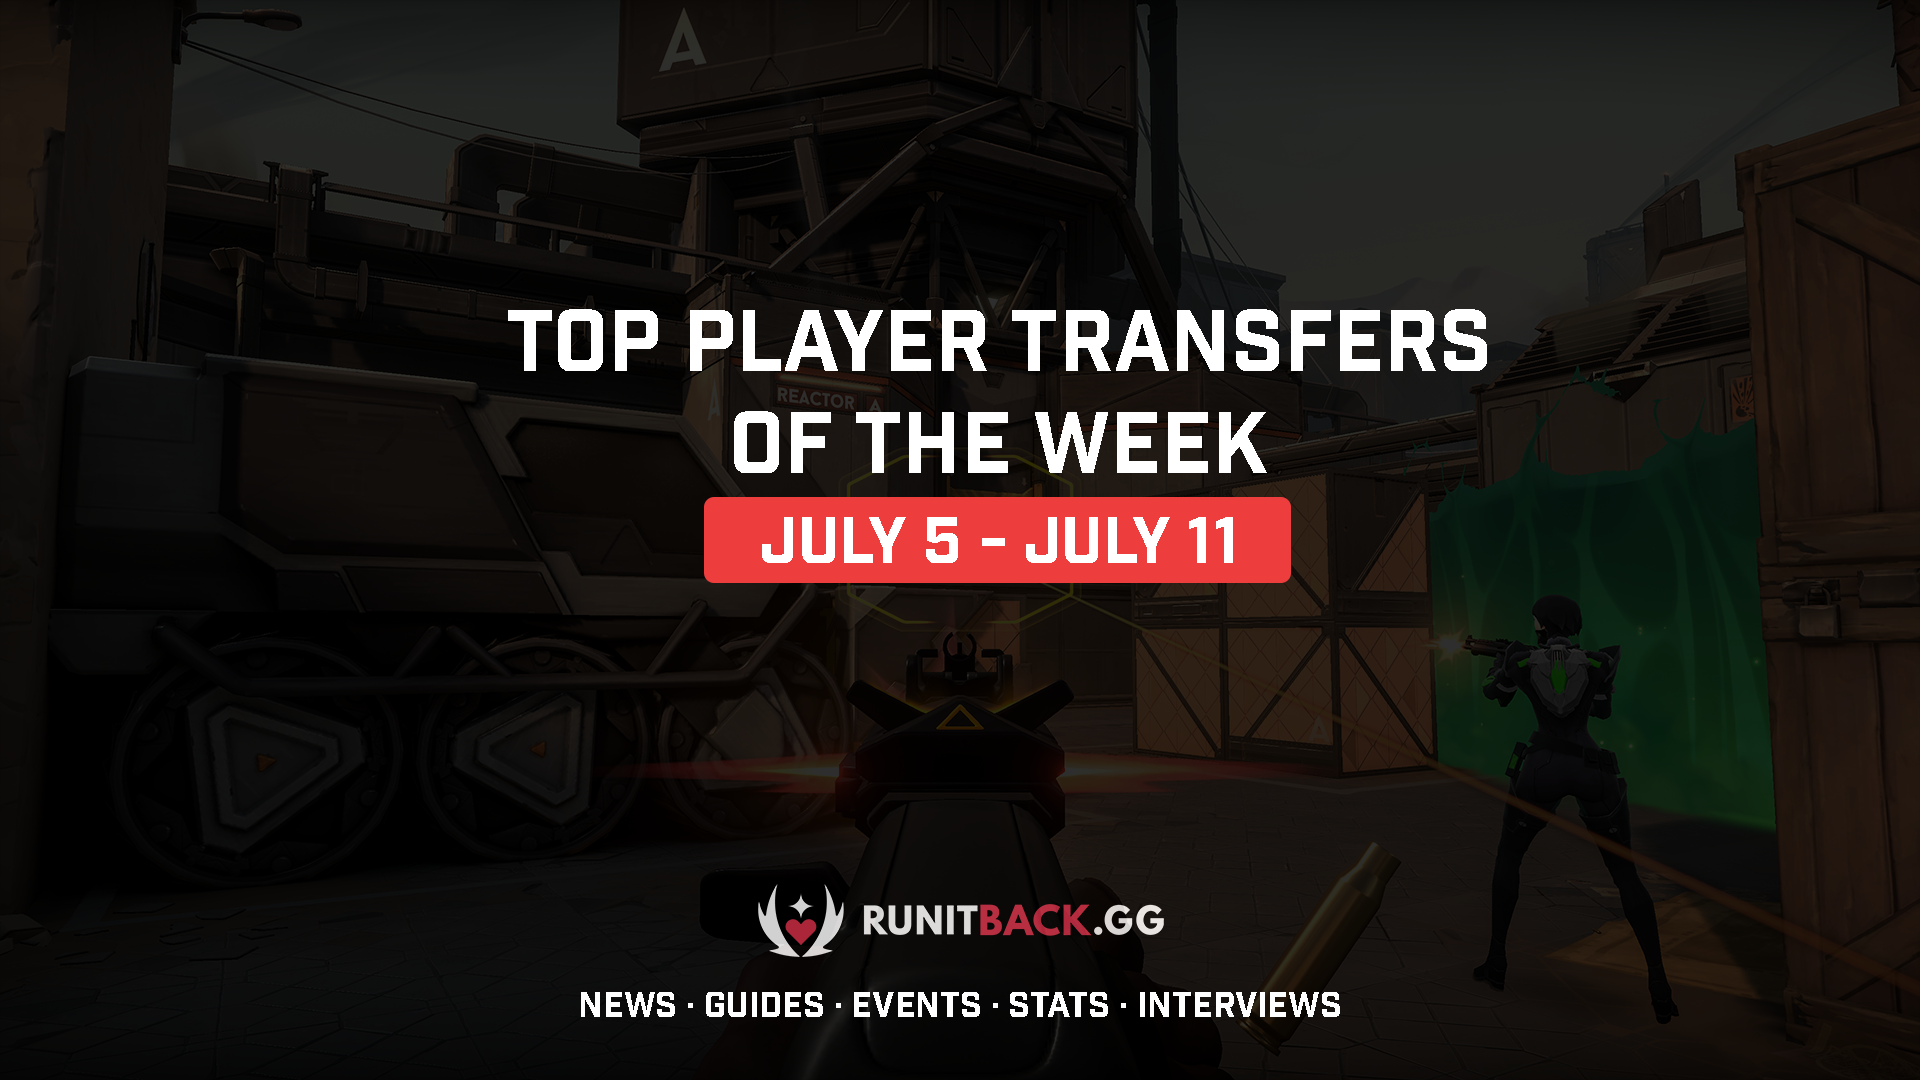 Top Player Transfers of the Week: July 5 – July 11